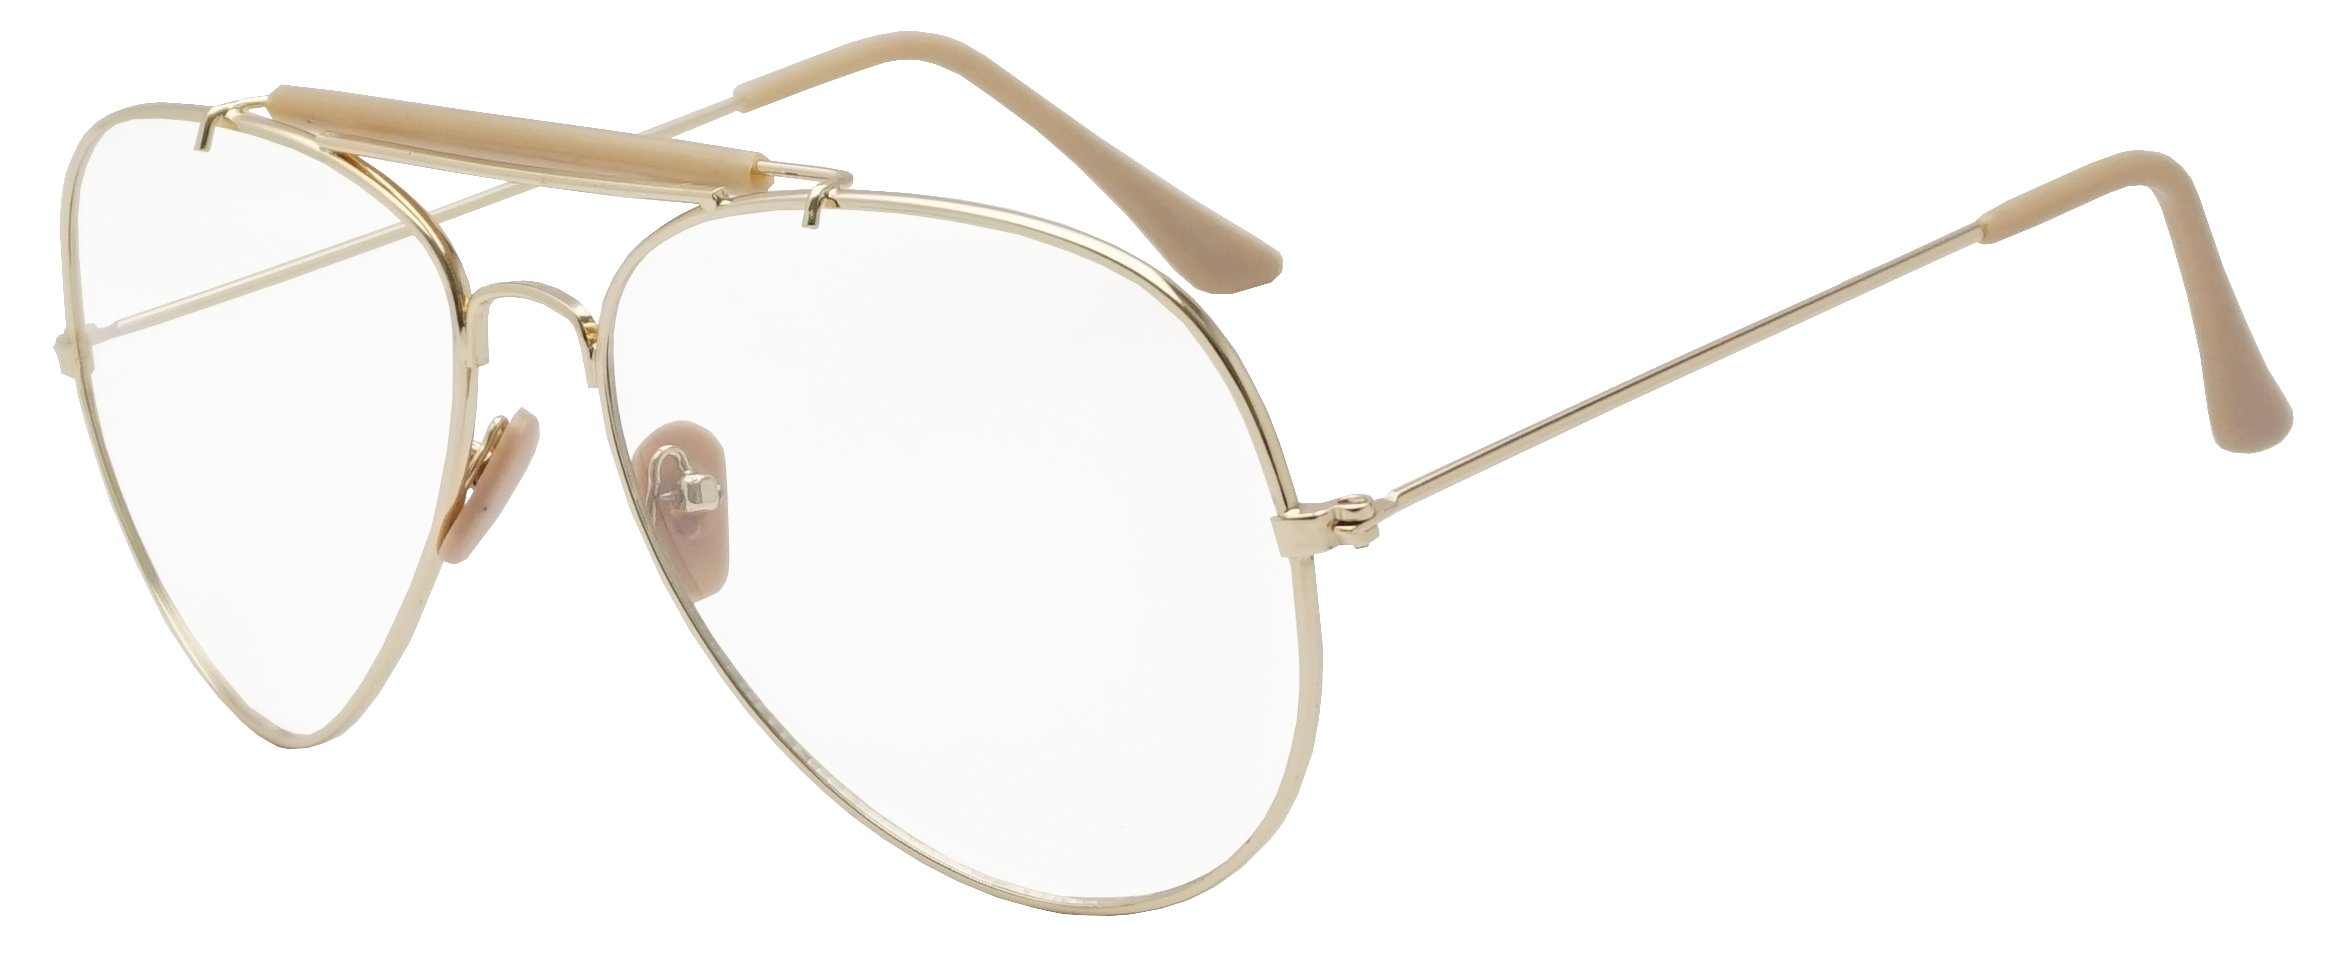 SunglassUP Oversize Round Double Bar Clear Lens Metal Aviator Plastic Cross Bar Glasses (Gold (Sun Sensor), 60) by Sunglass Stop Shop